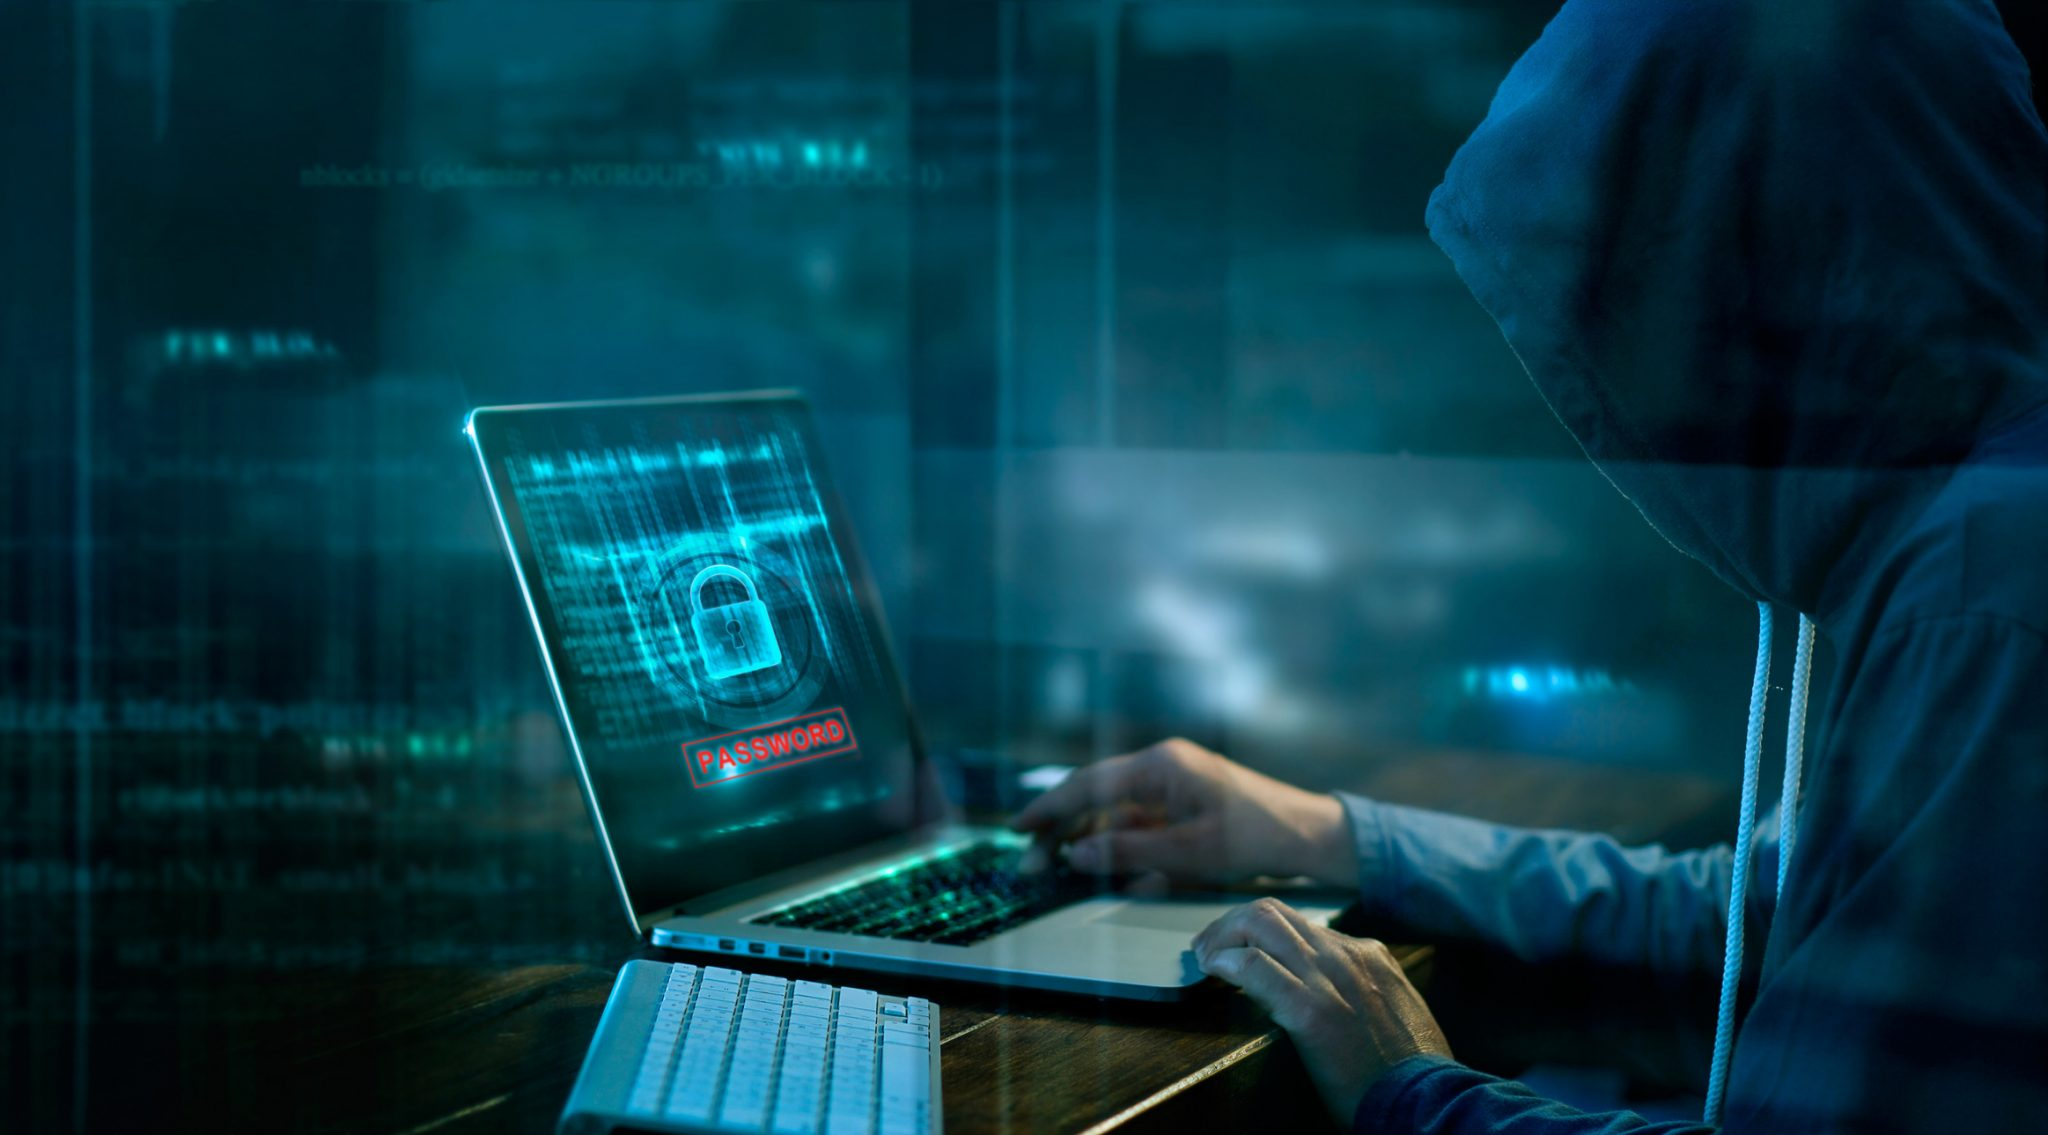 Ways Your Business Can Avoid Cybercrime